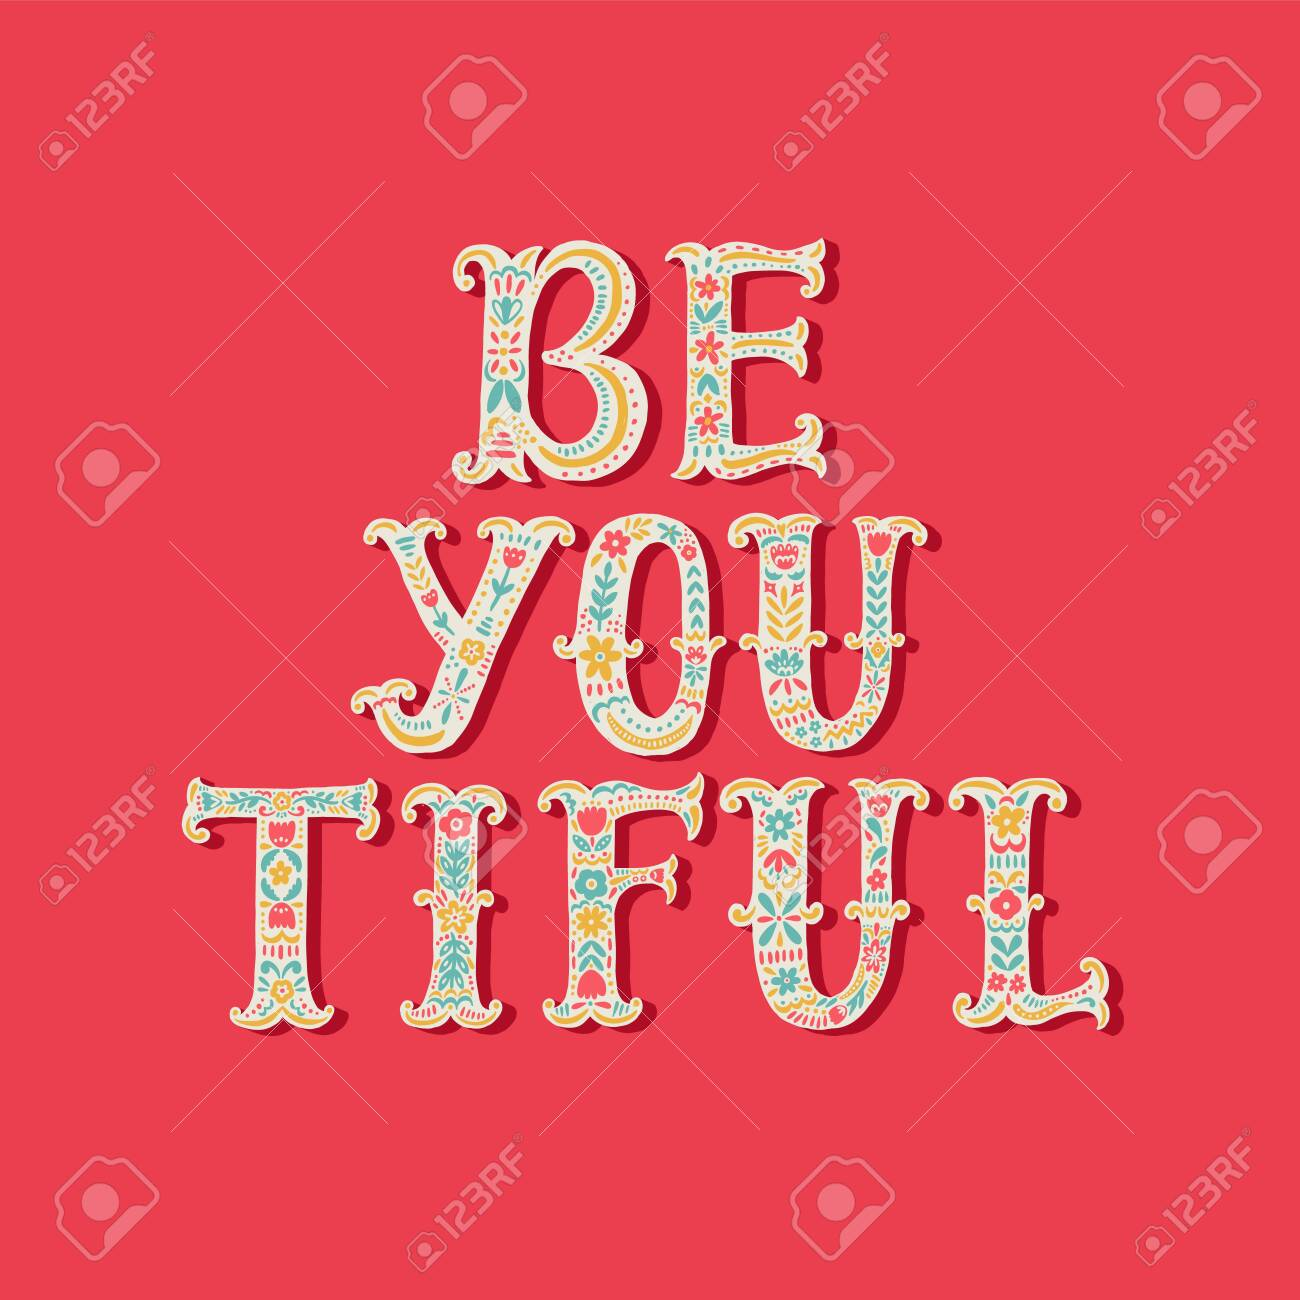 Be You Tiful Hand Drawn Lettering With Floral Decoration Hand